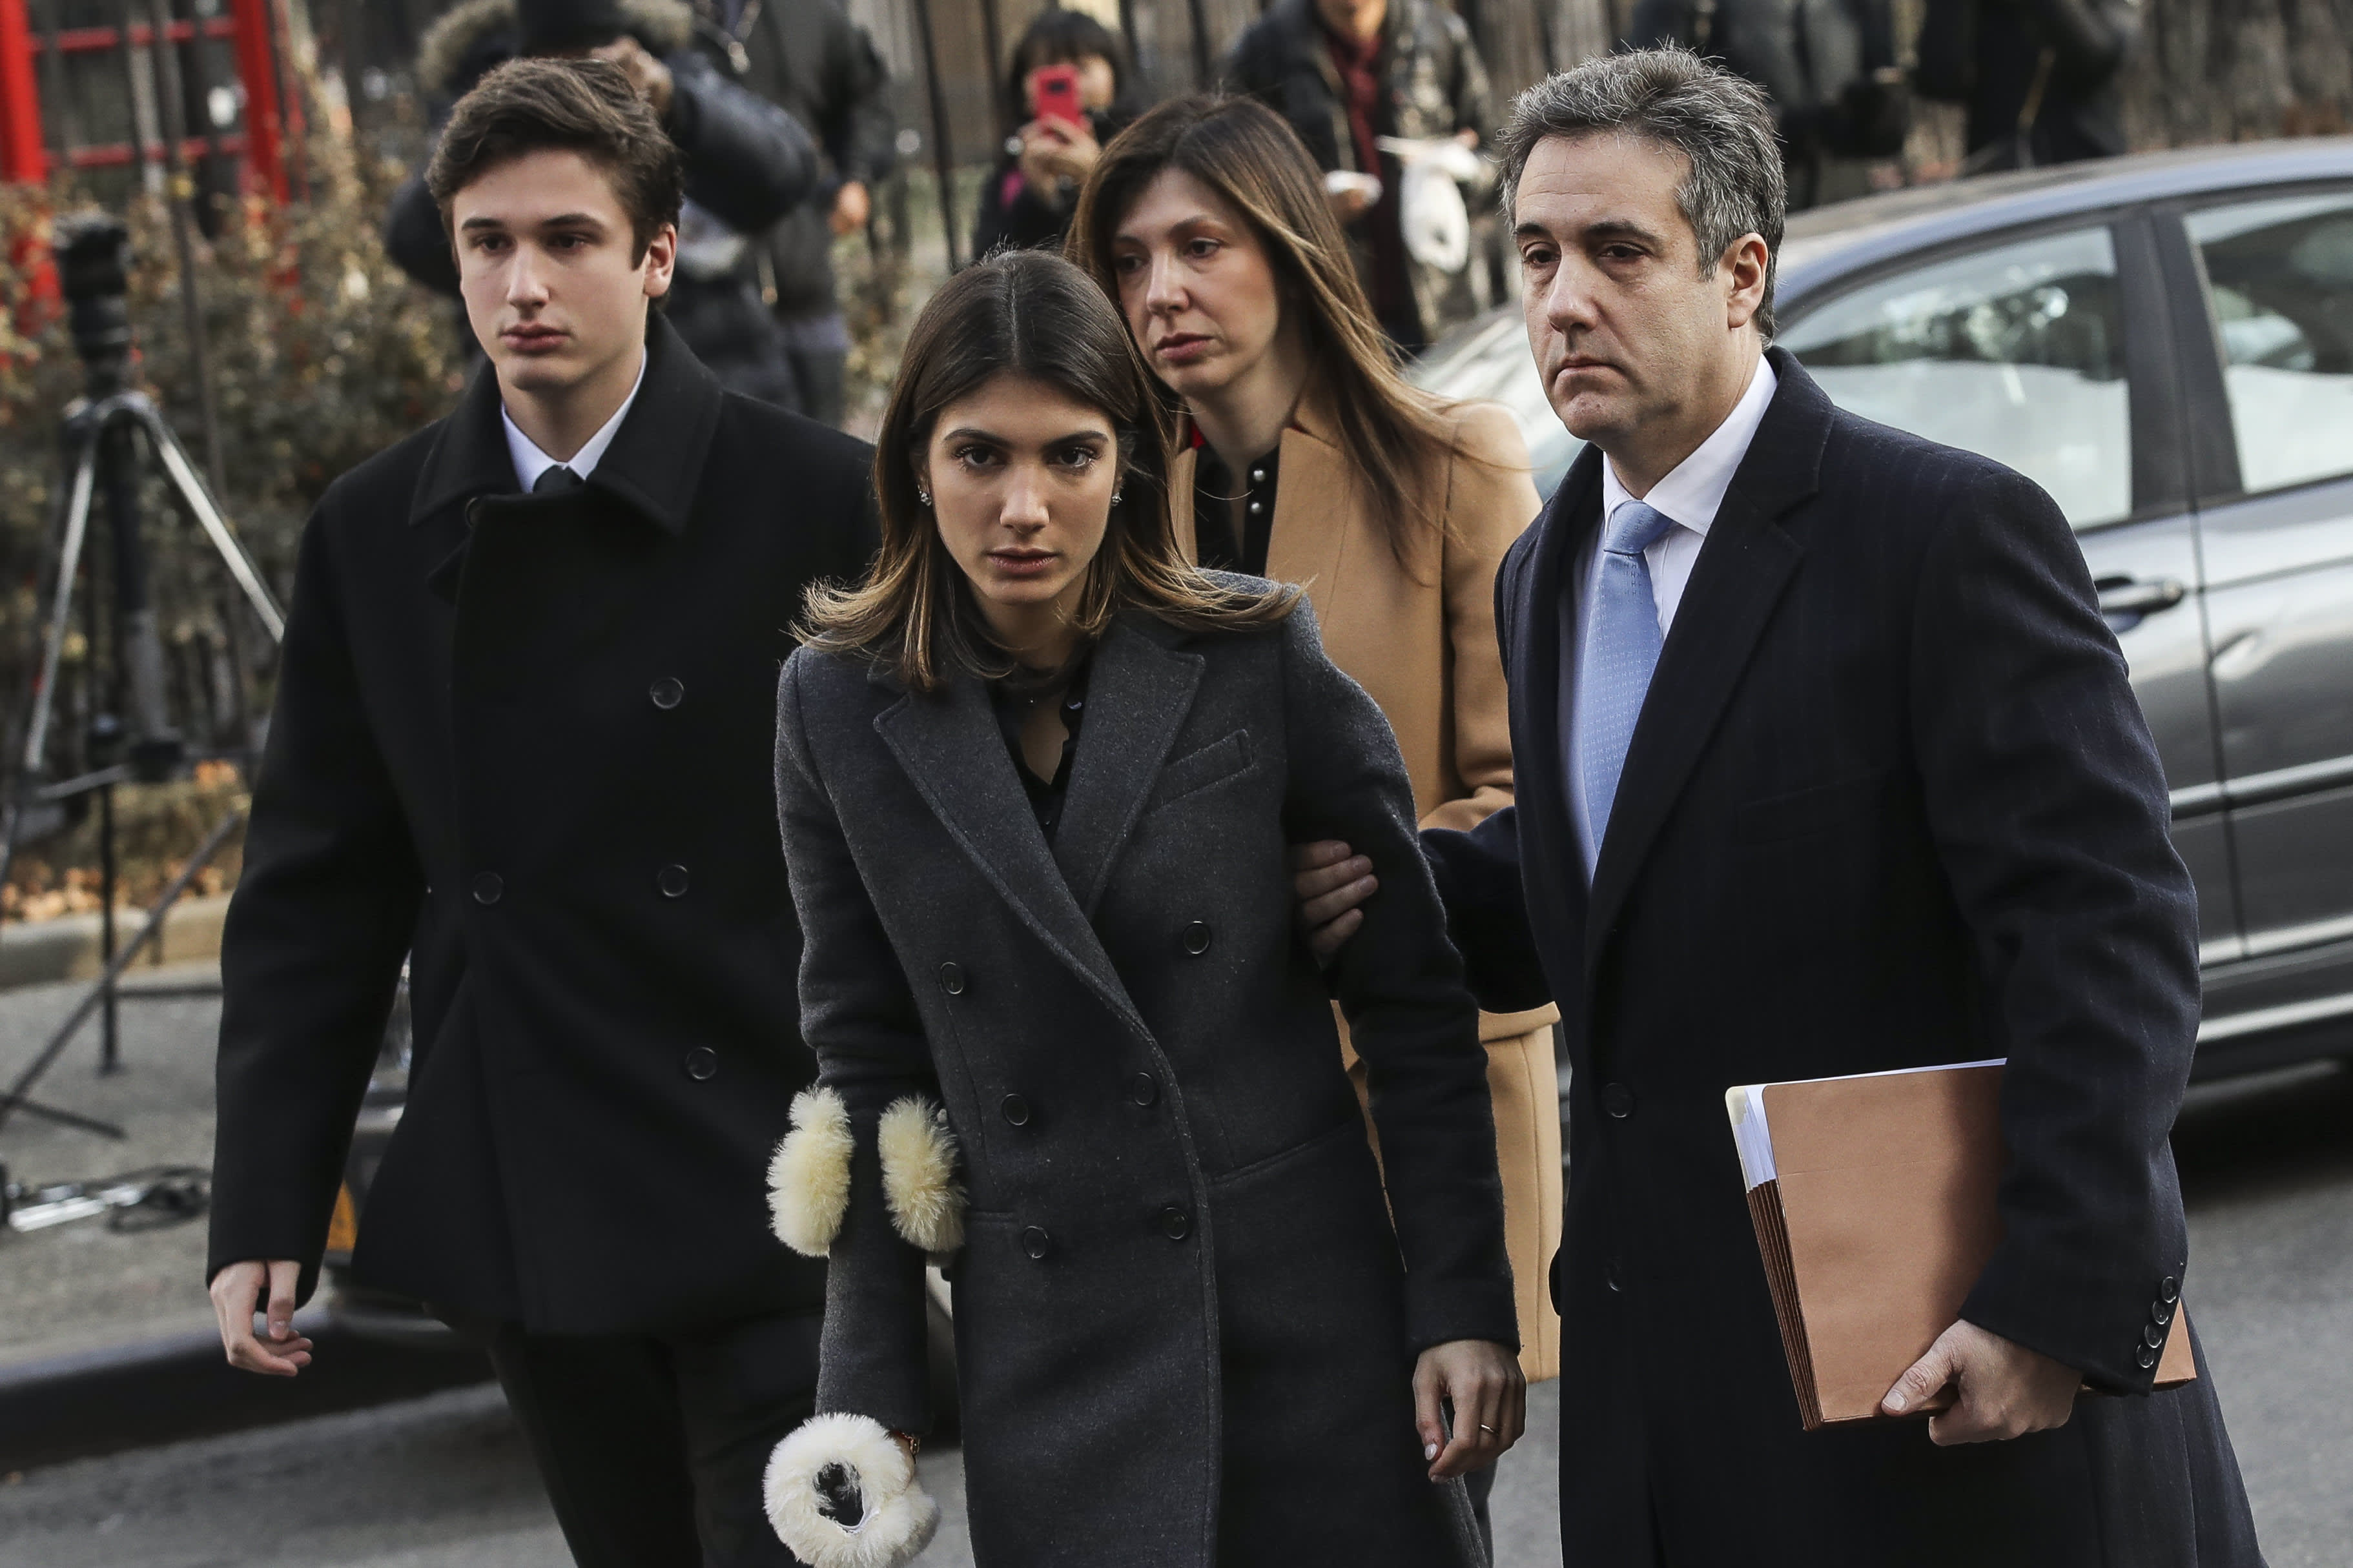 Former Trump lawyer, fixer Michael Cohen faces sentencing in